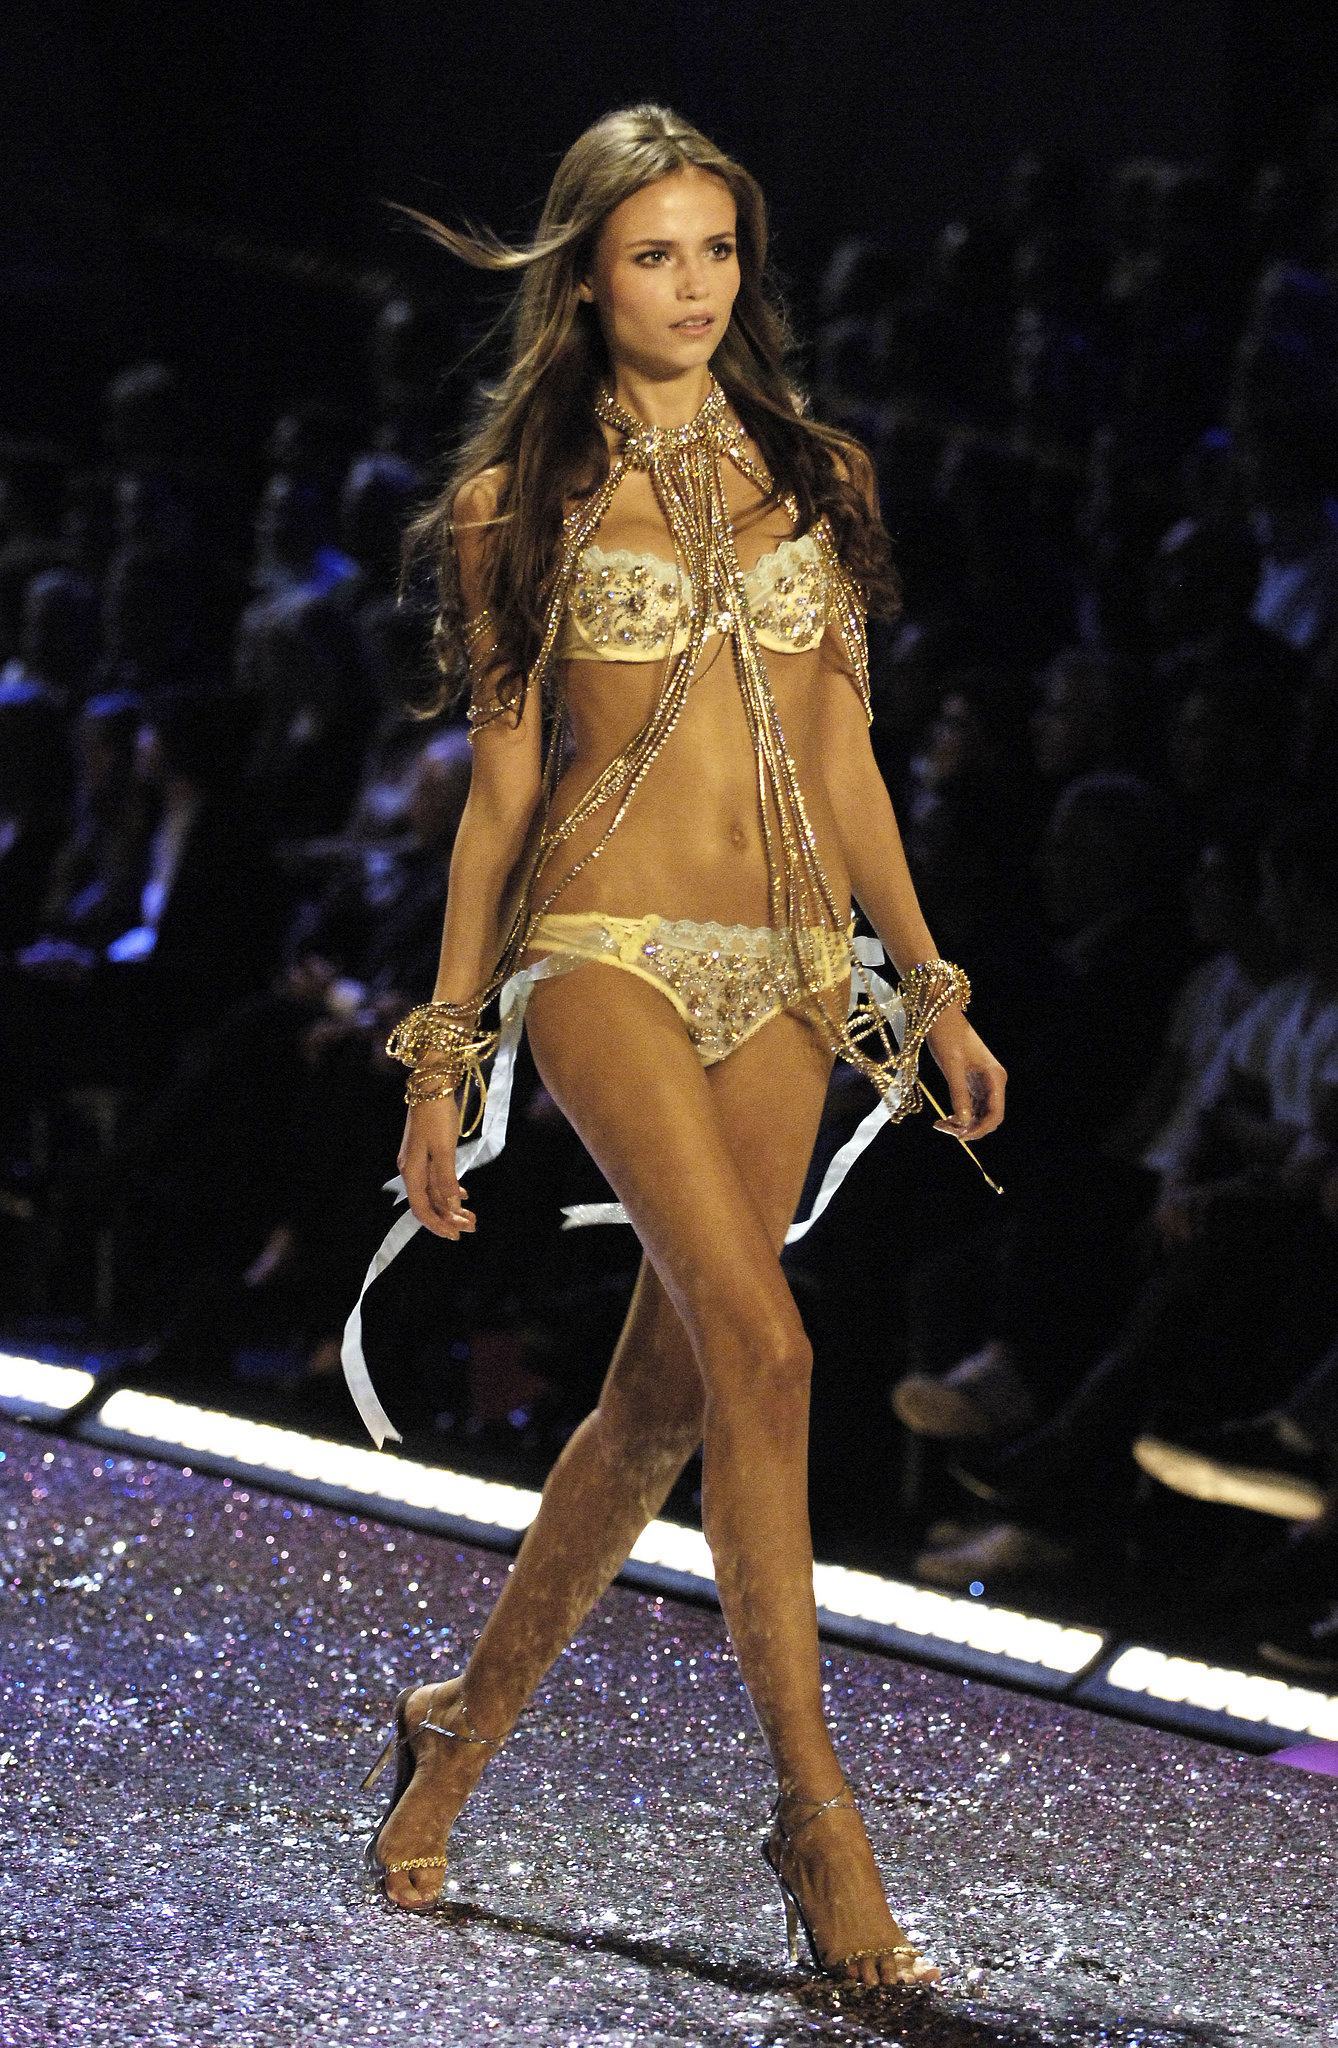 Natasha Poly wore dark brown locks and a gold chain ensemble on the runway in 2005.